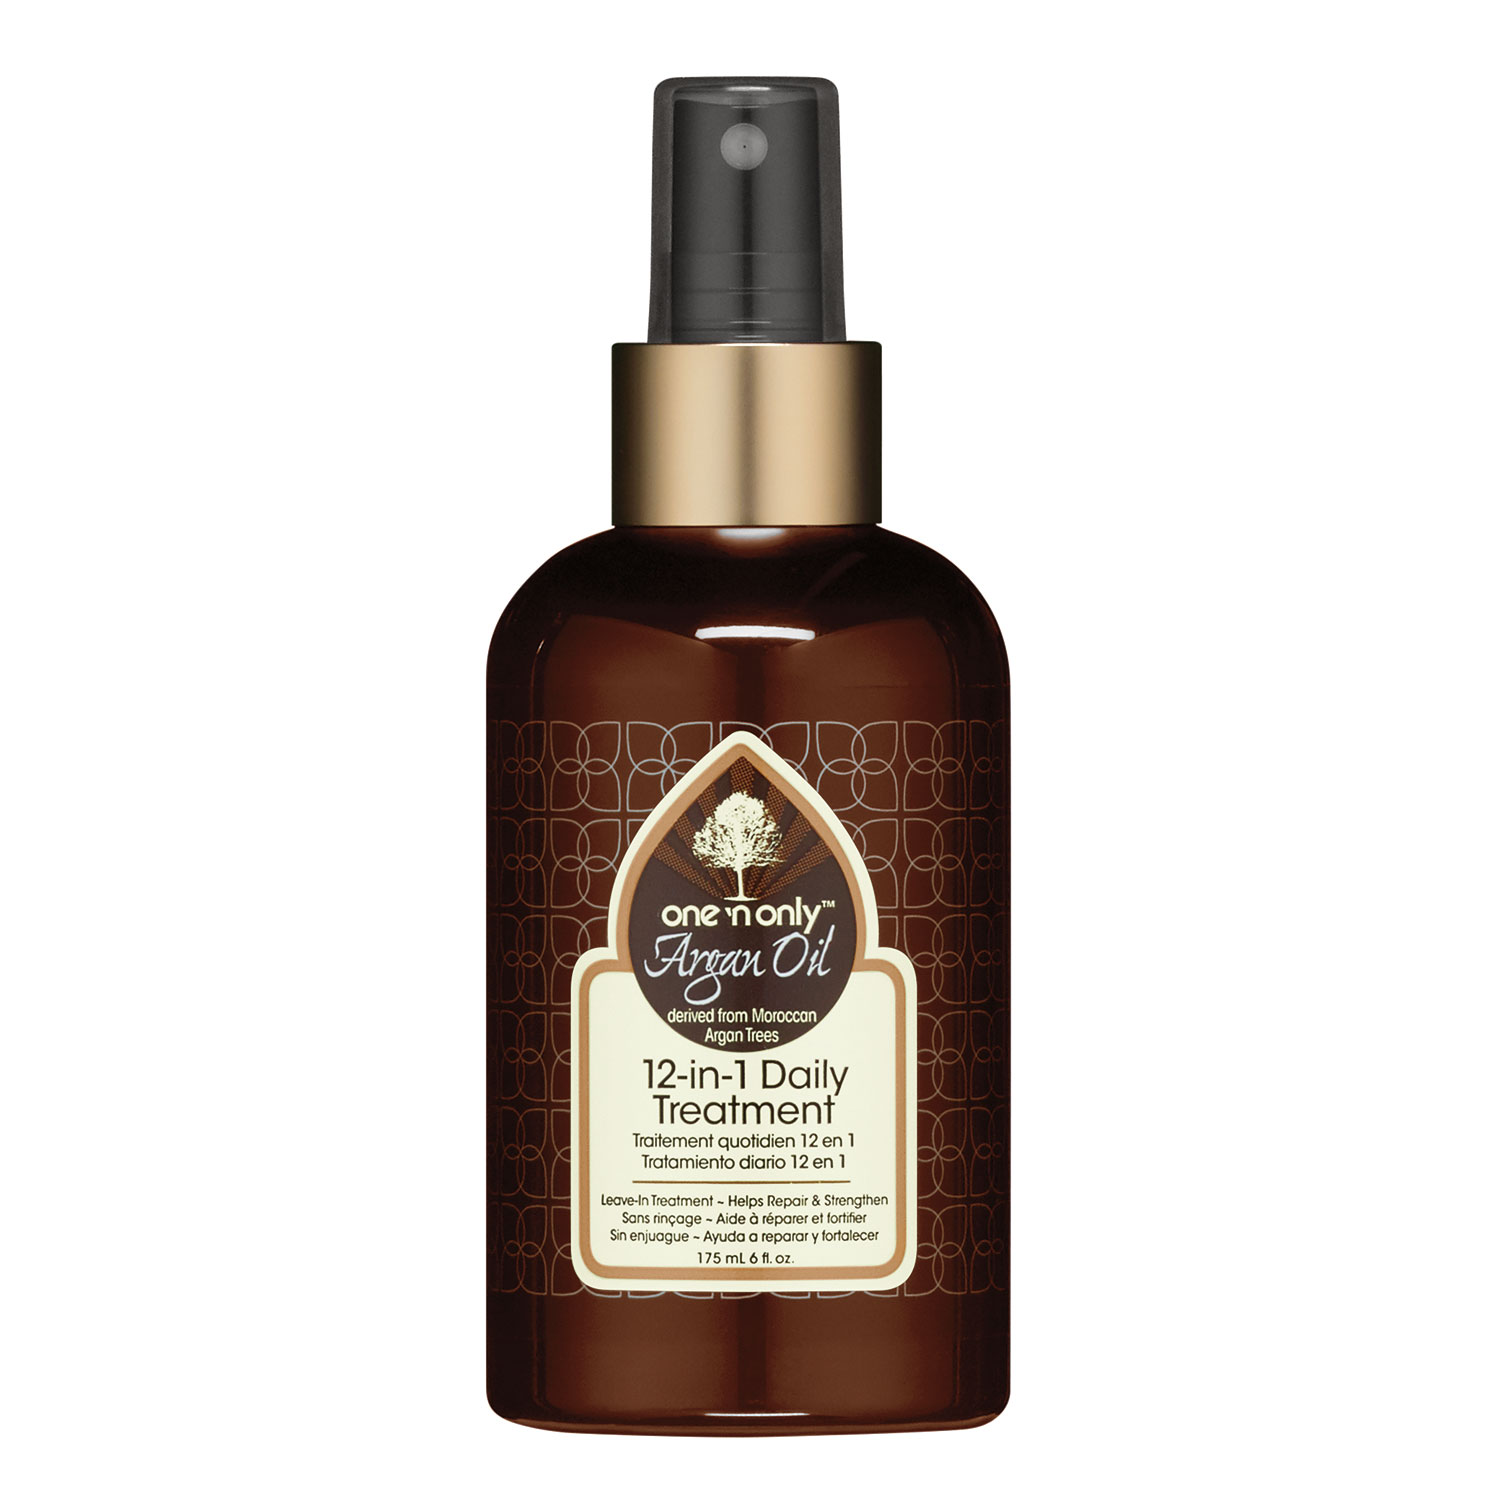 Image of One n Only Argan Oil 12-in-1 Daily Treatment - 6oz